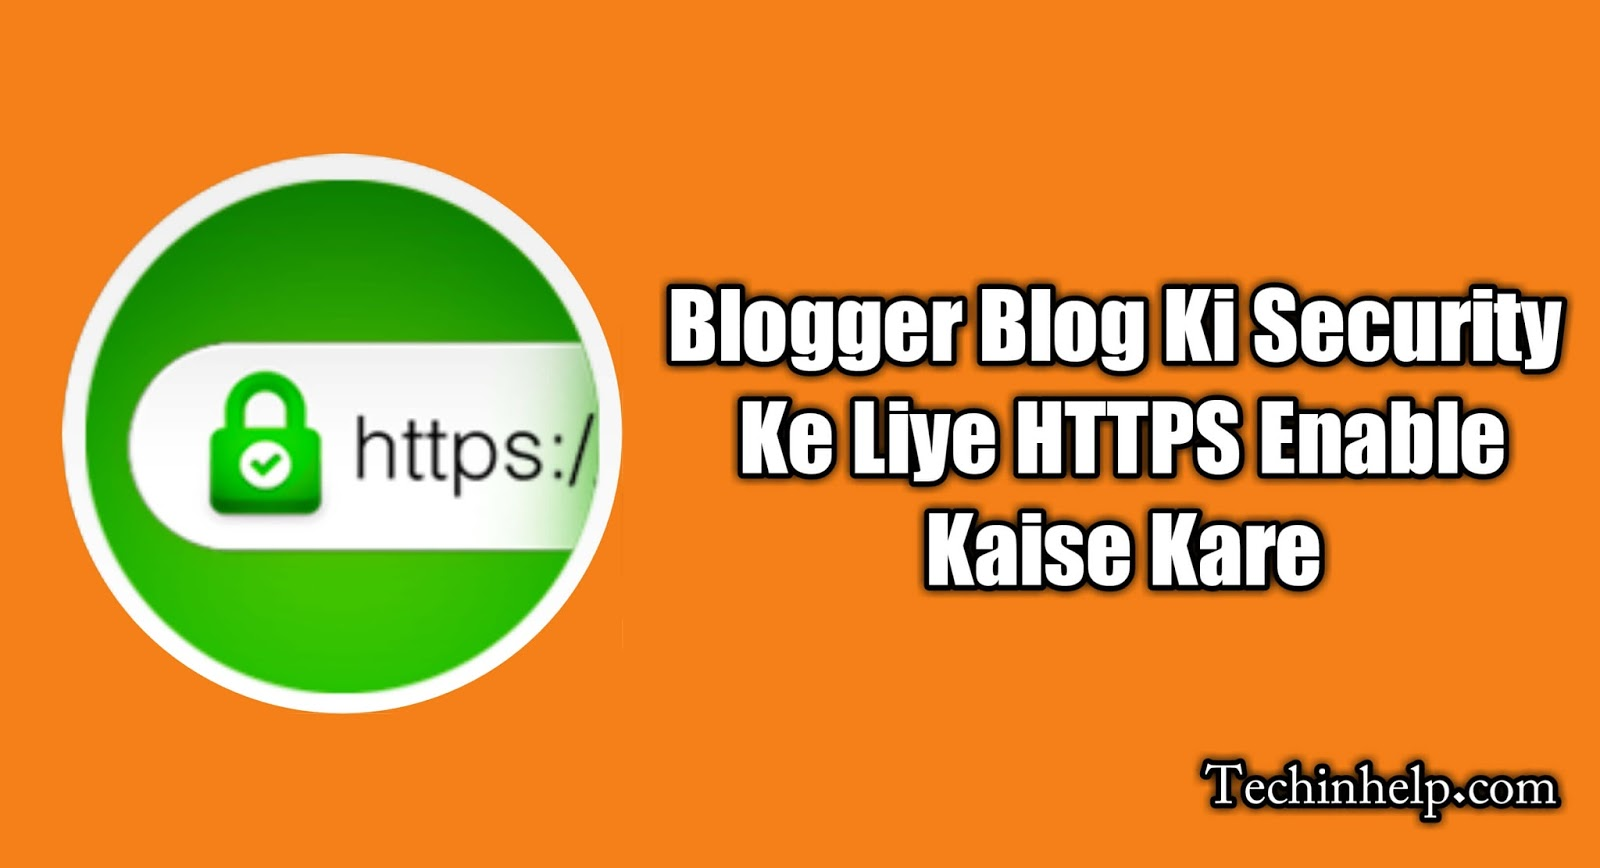 Blogger Blog Ki Security Ke Liye HTTPS Enable Kaise Kare